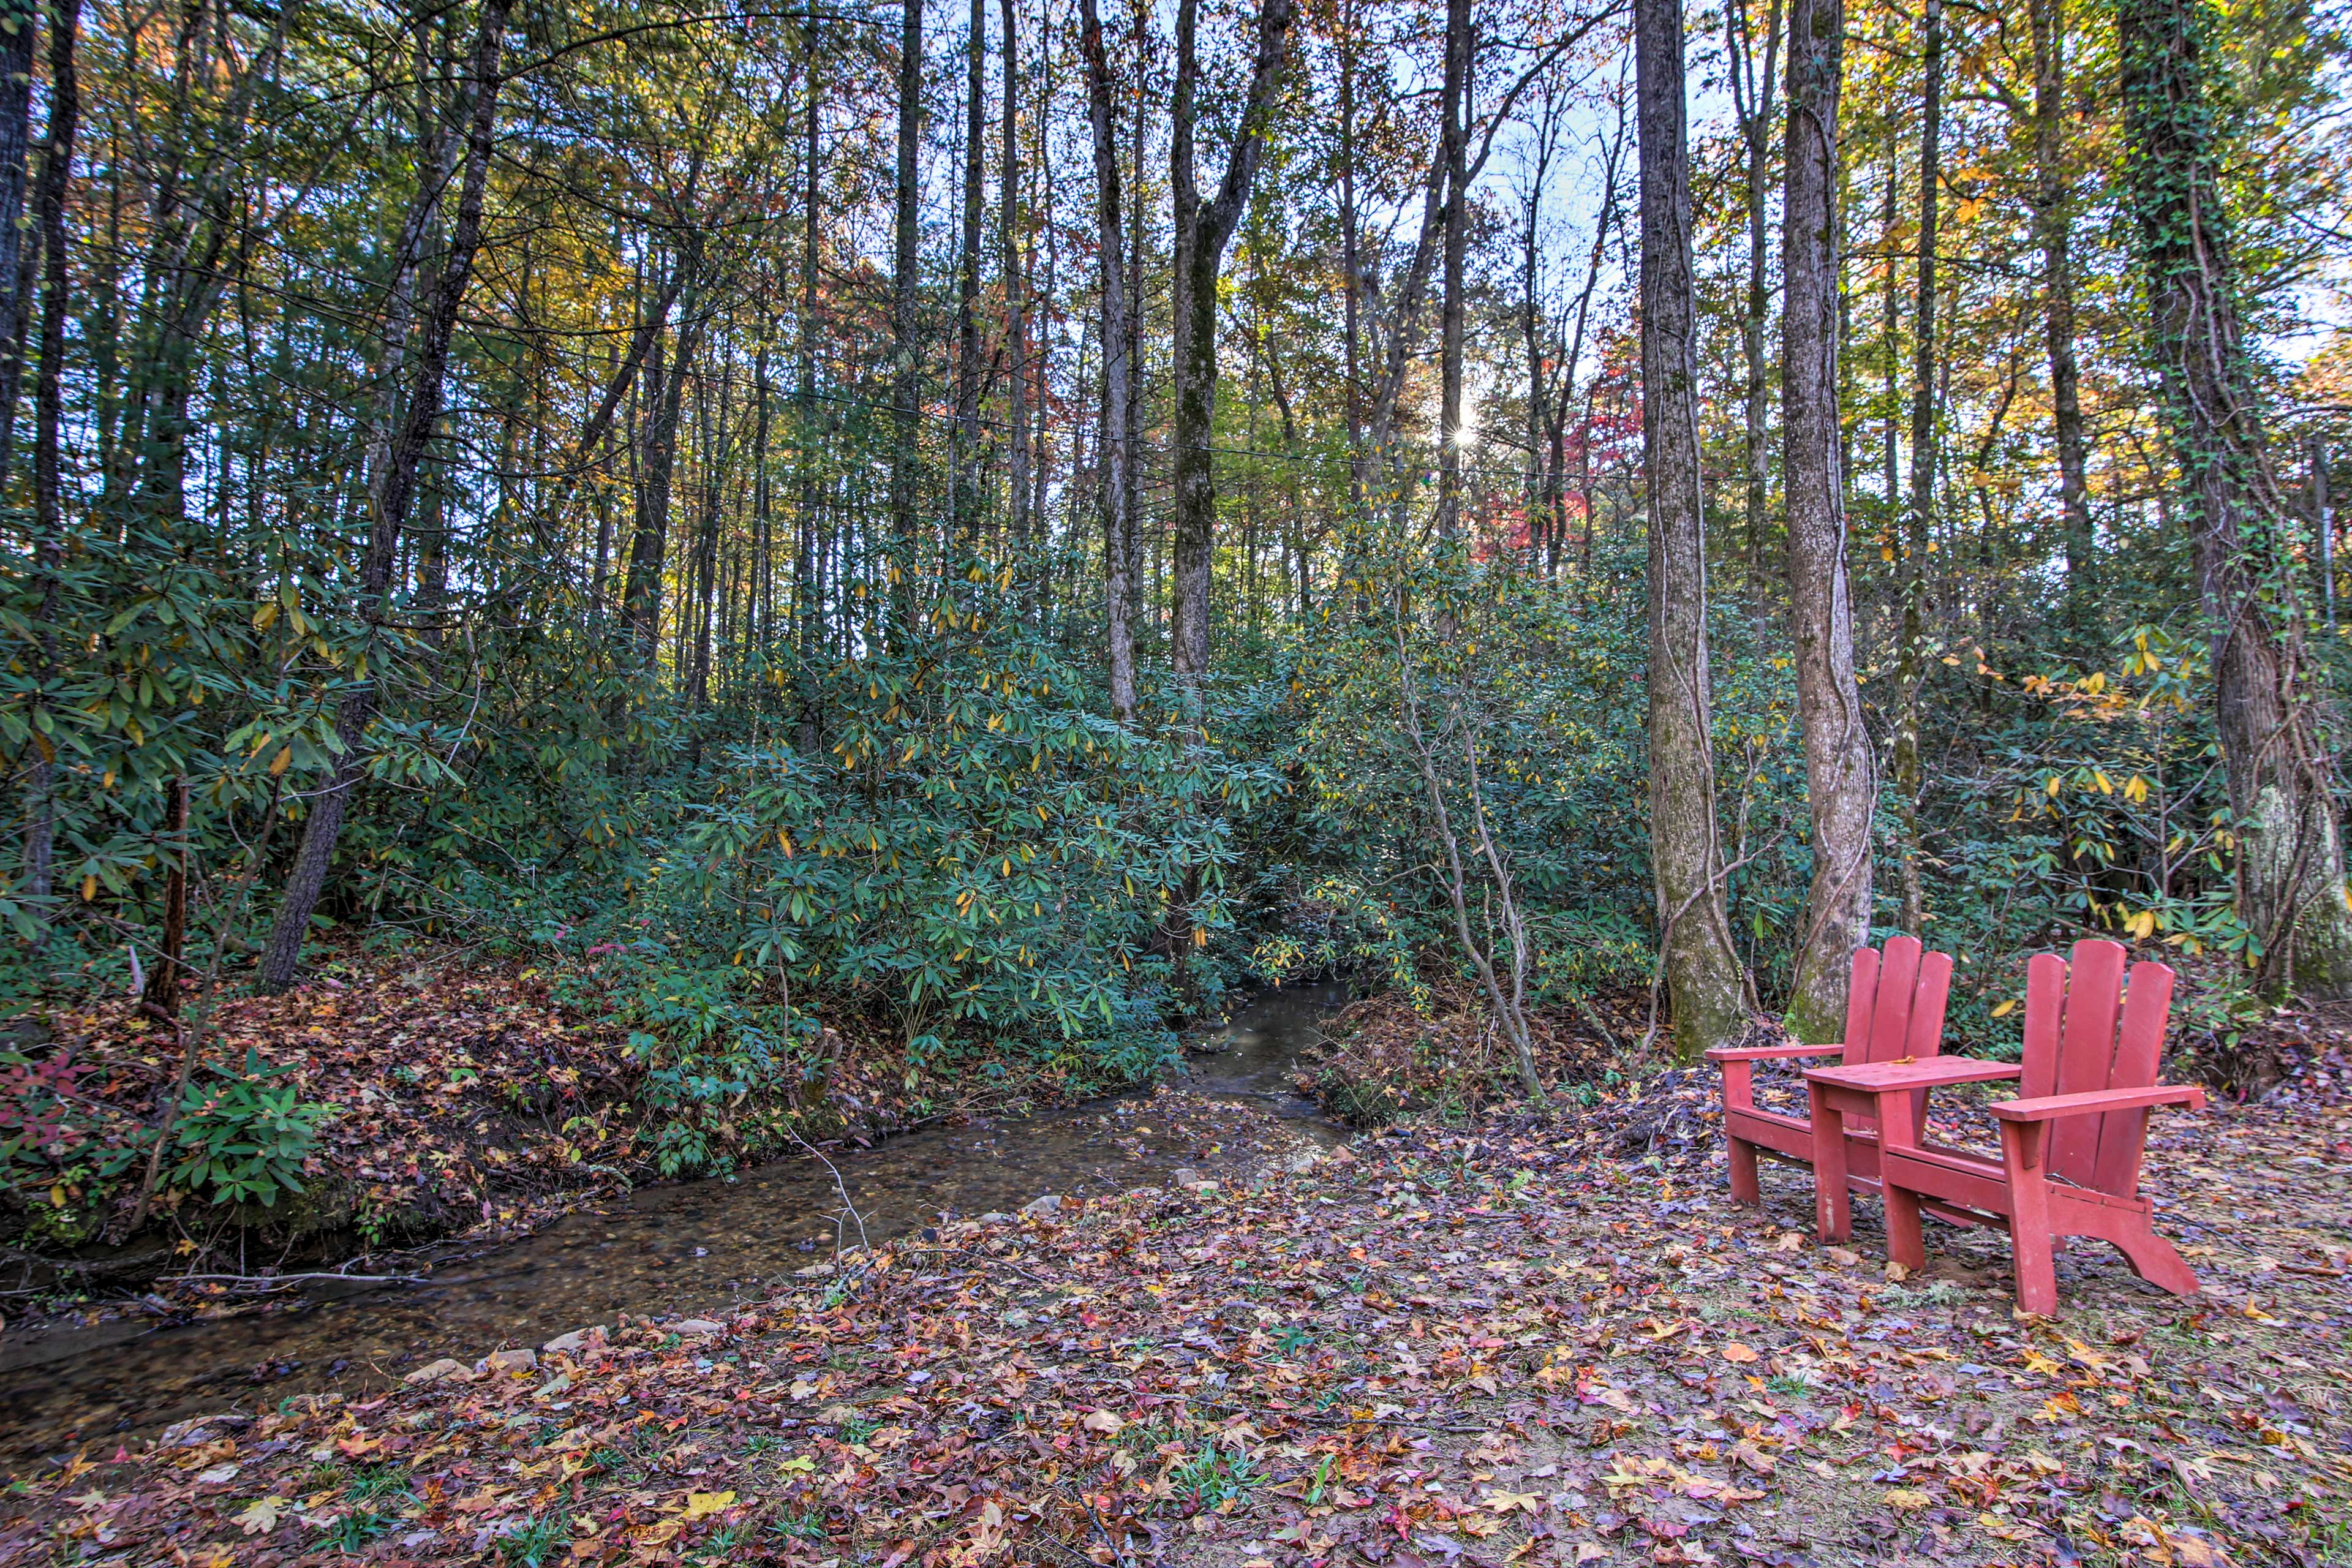 Take a seat next to the relaxing creek at the edge of the yard.